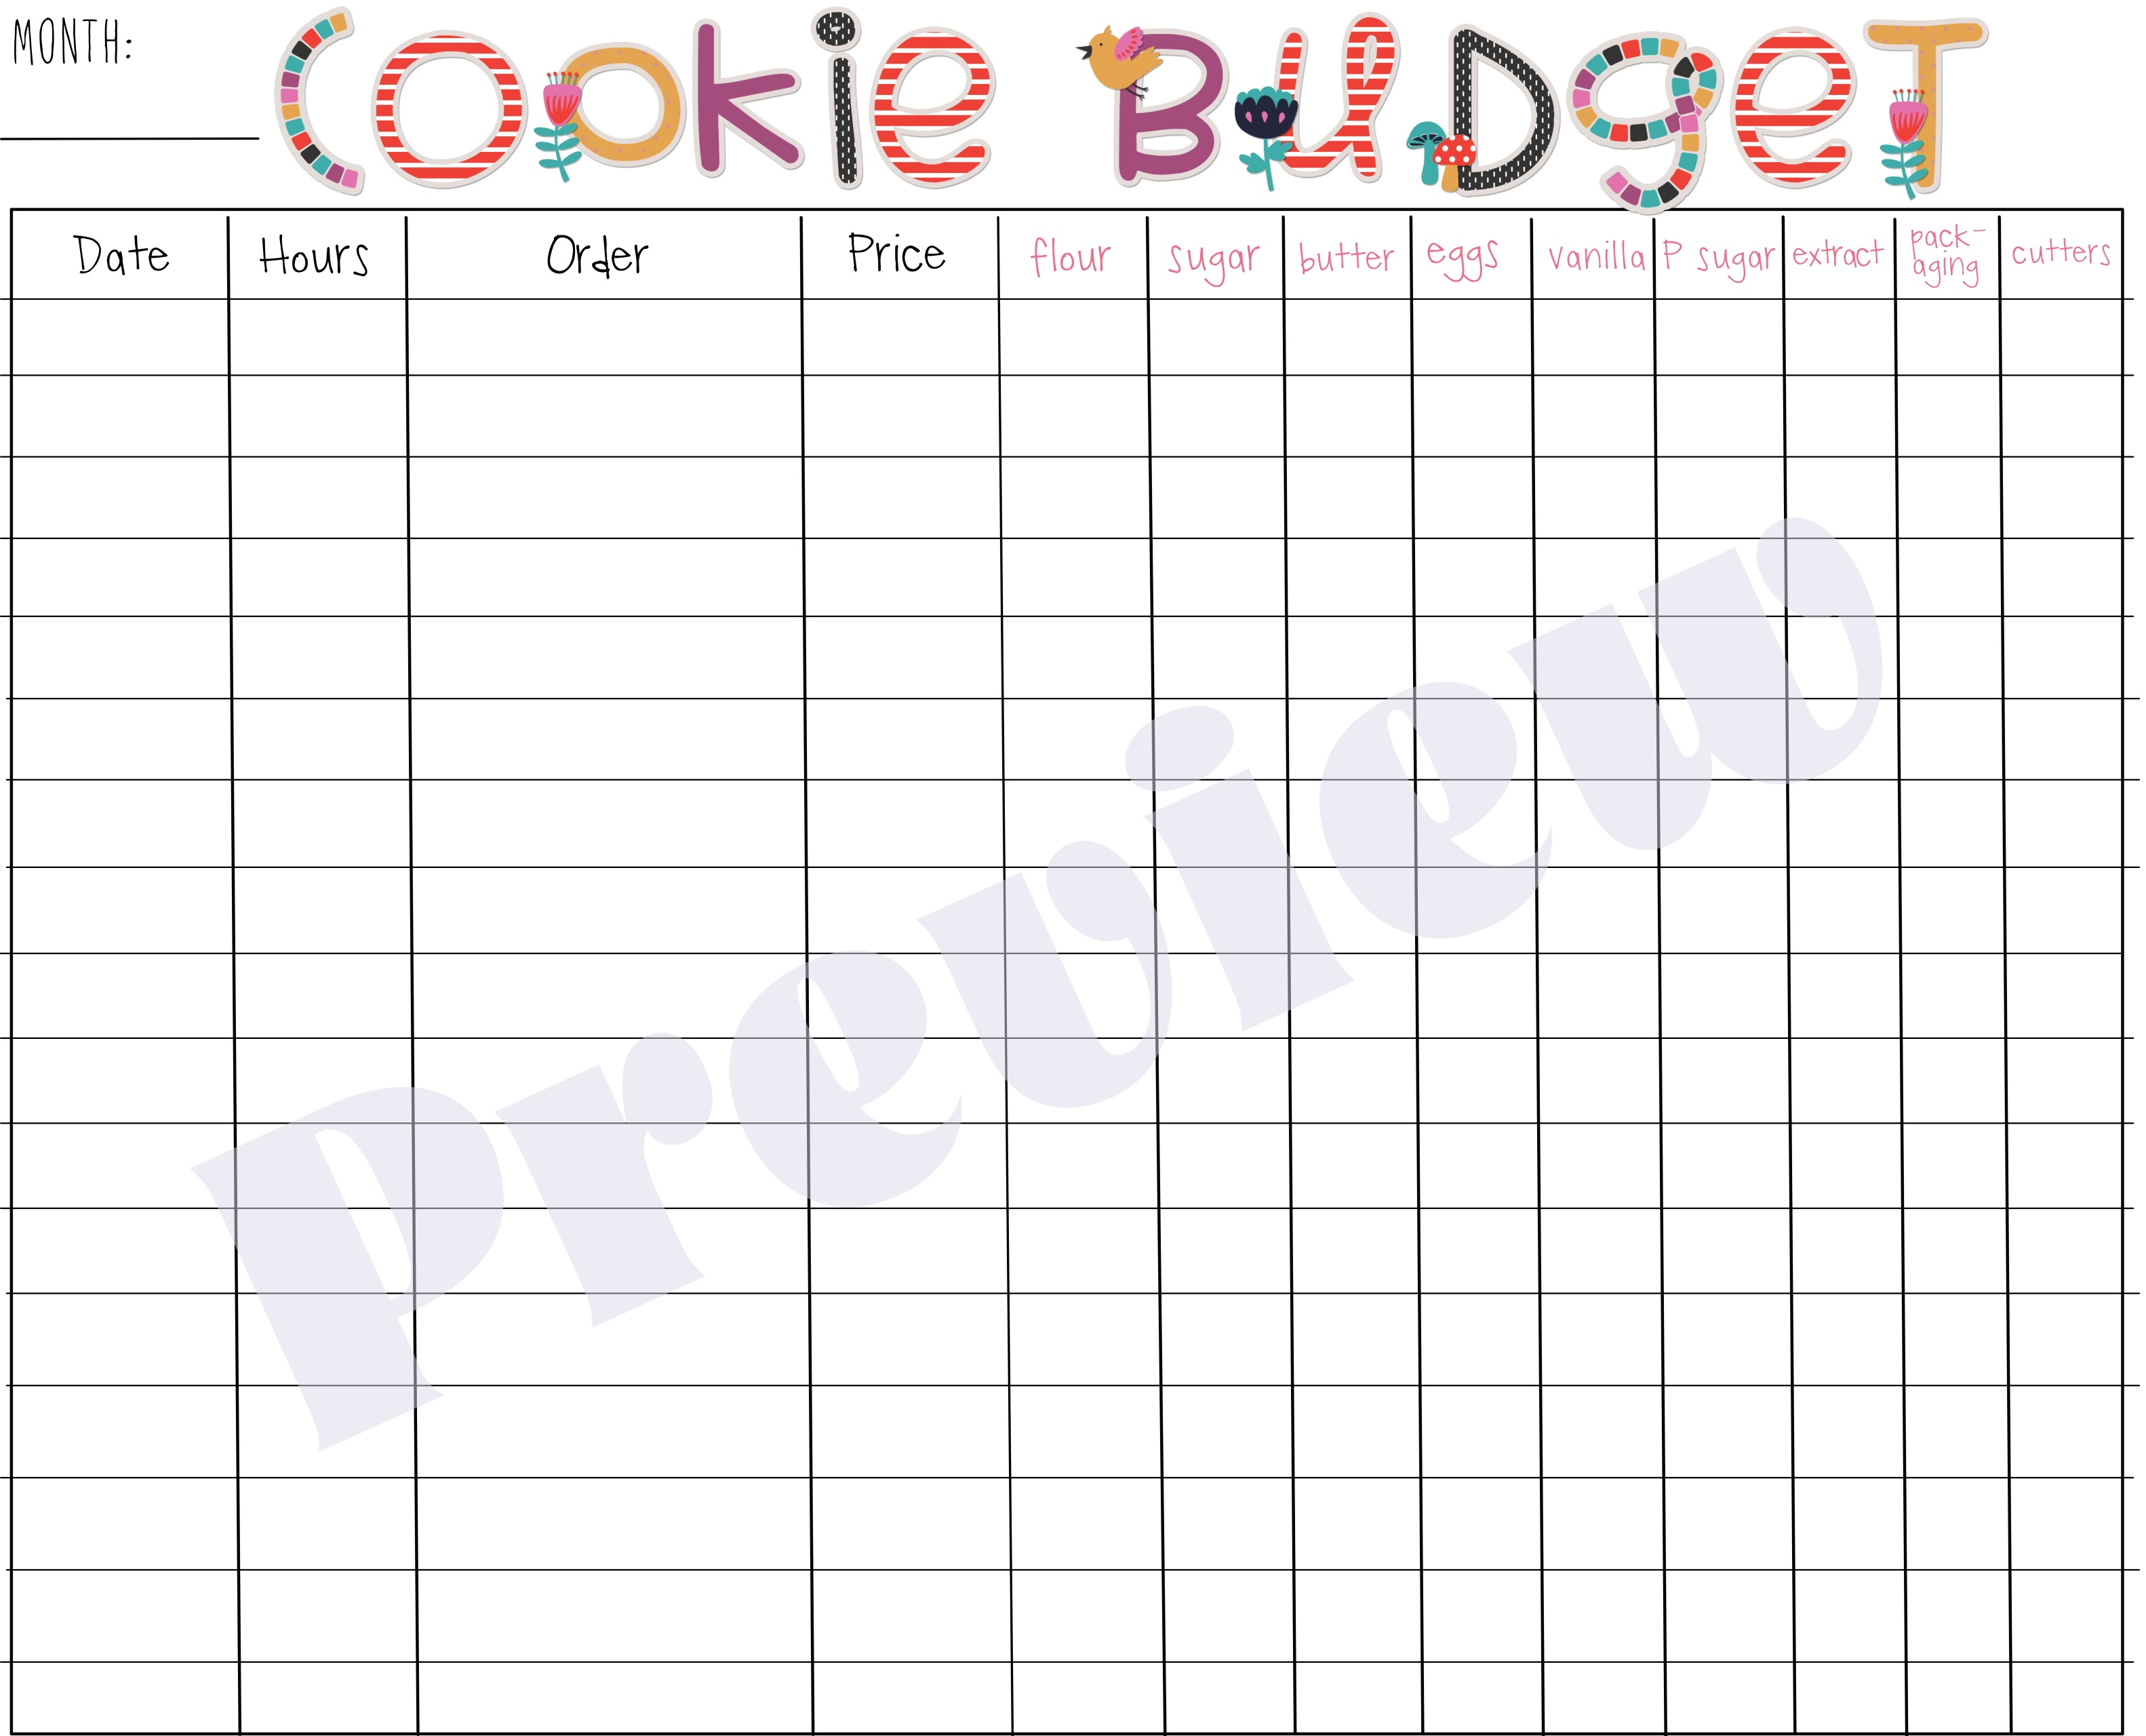 Monthly Cookie Budget Spending Sheet